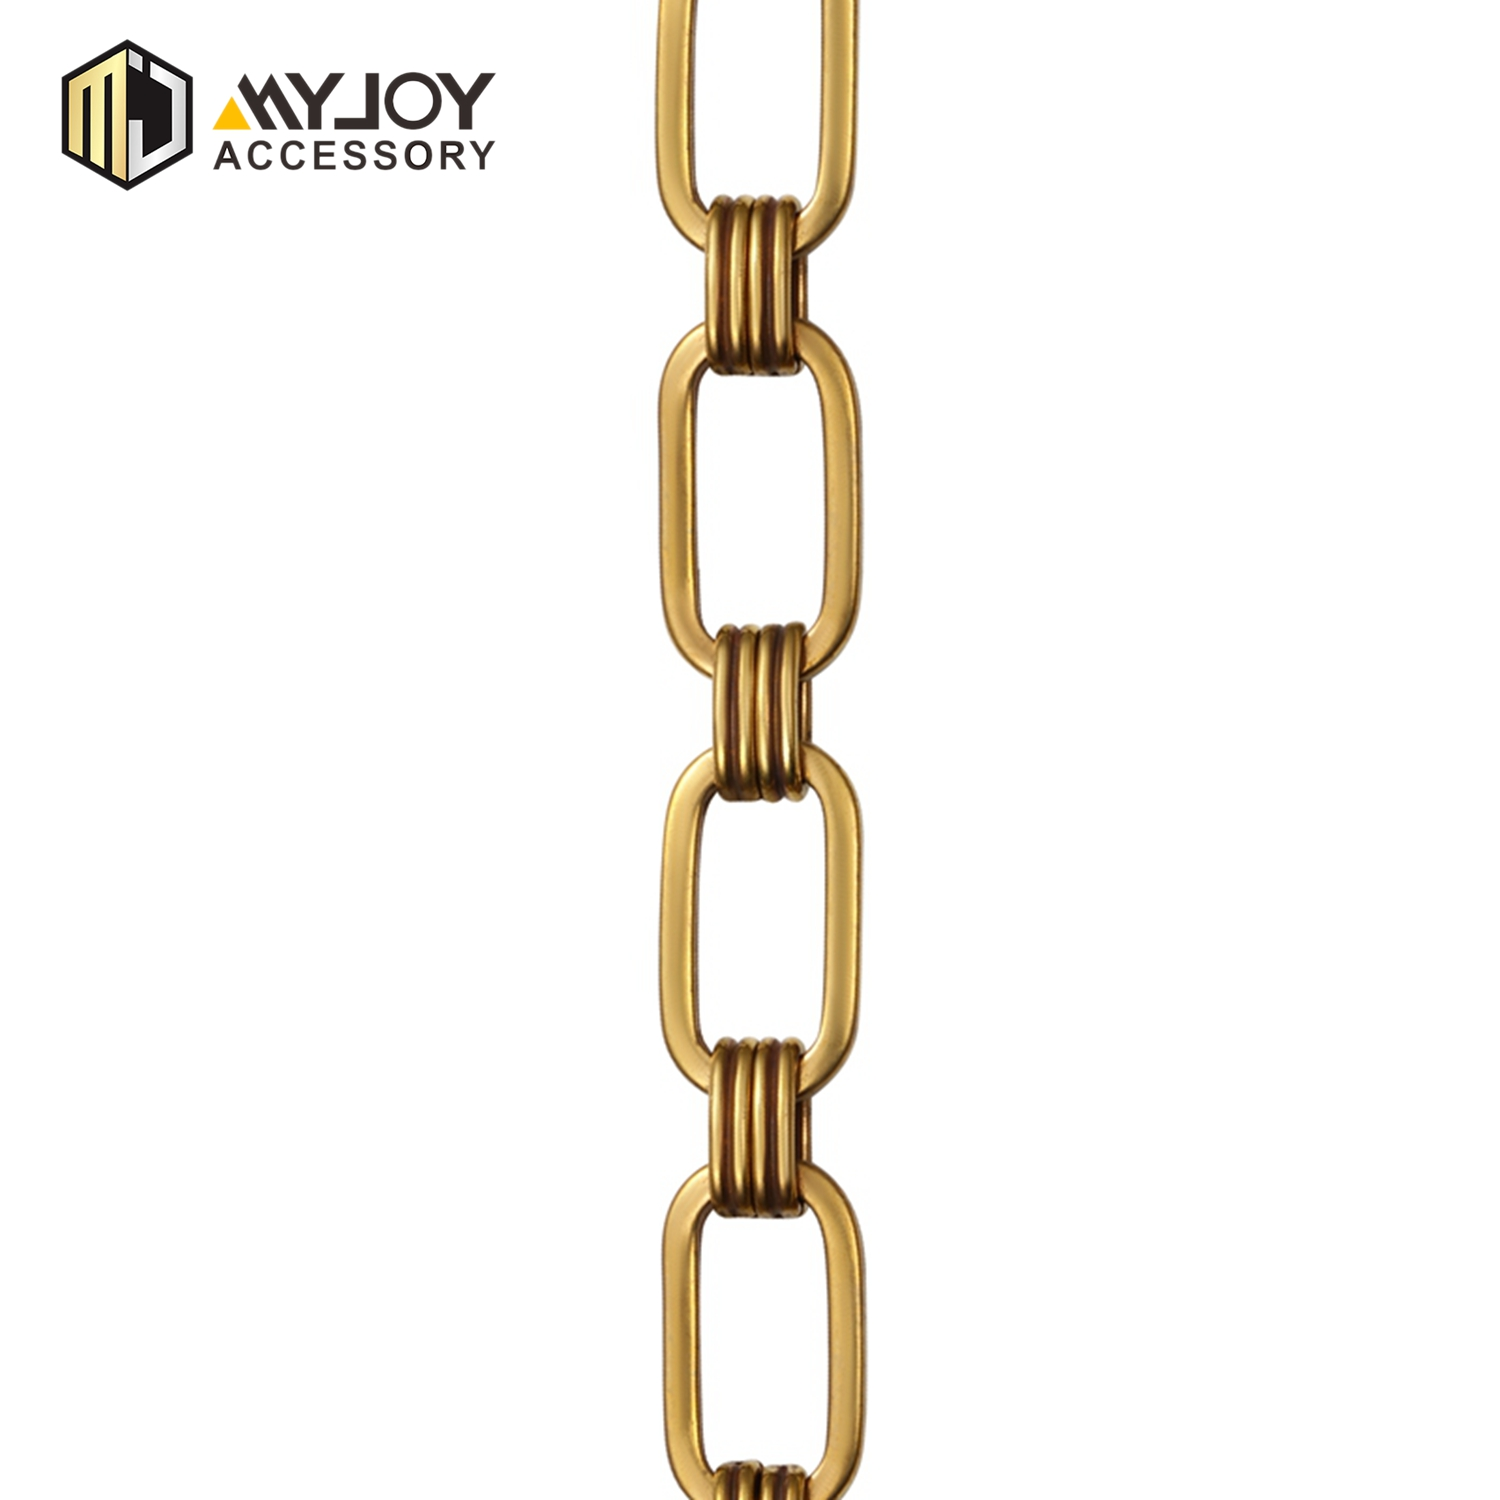 MYJOY New chain strap factory for handbag-1